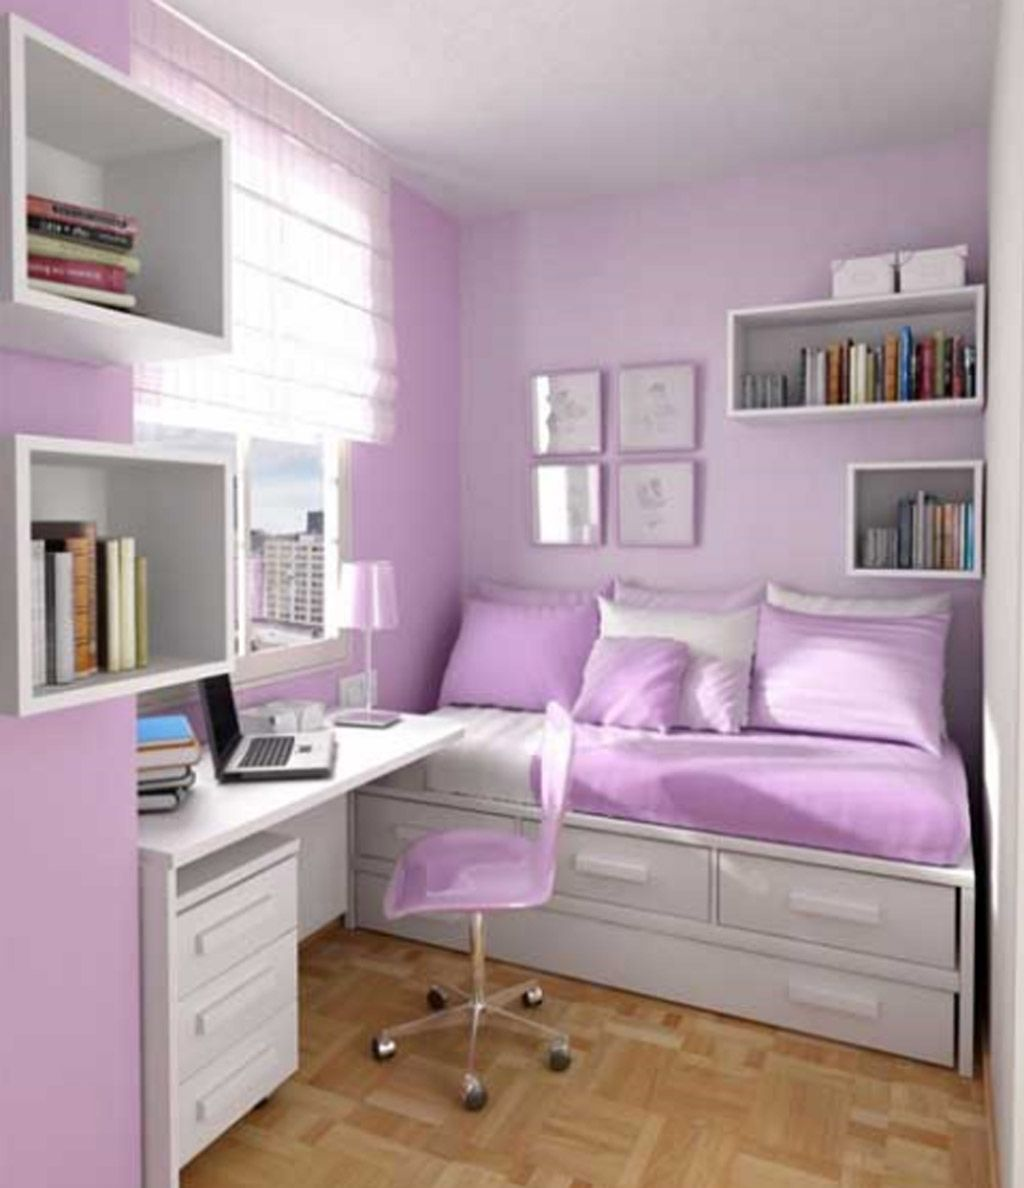 Teenage Girl Room Decor Decor For Teenage Bedrooms  Room Decorating Ideas Light Purple